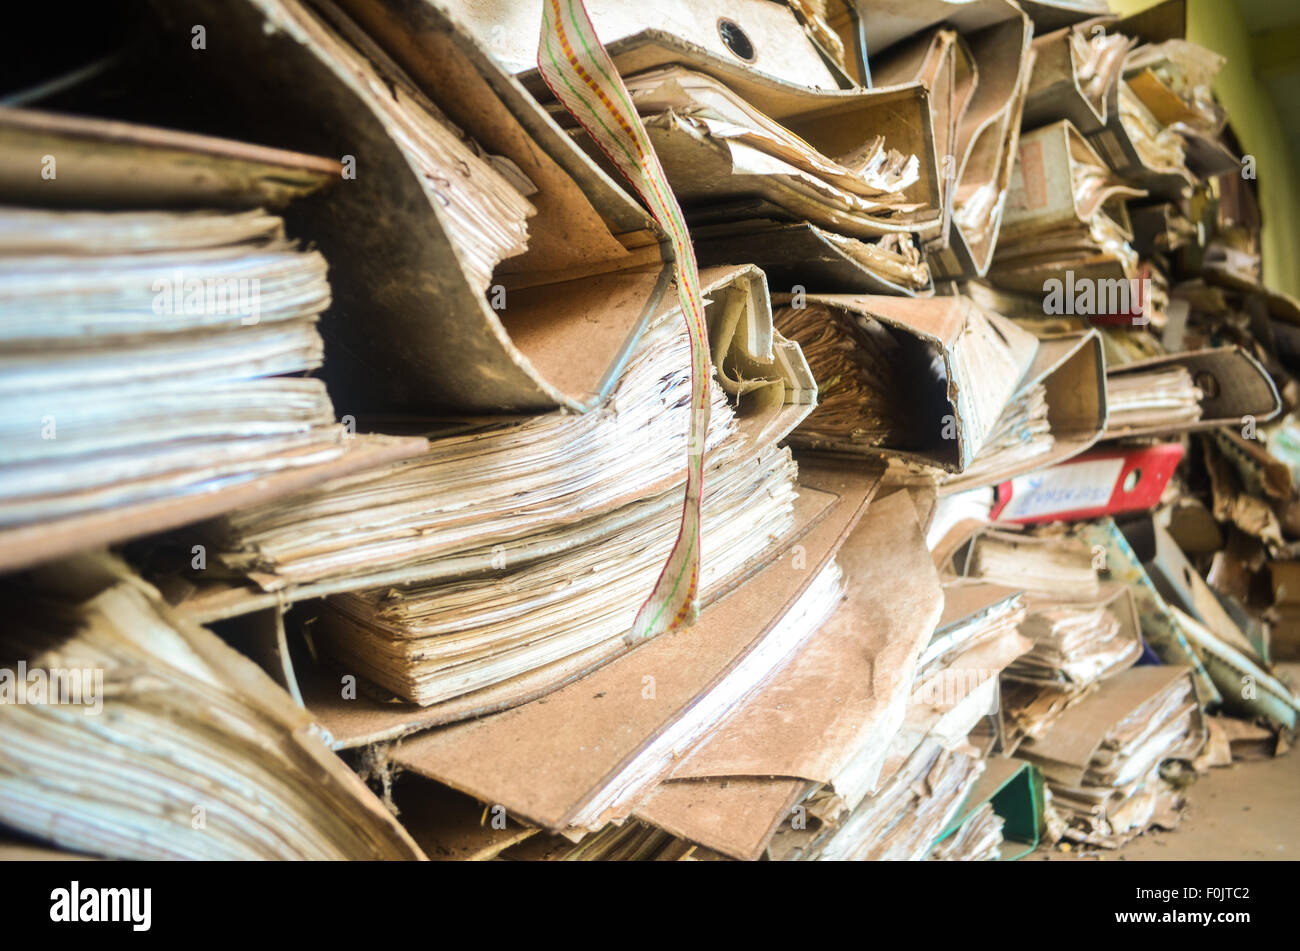 Old yellowish files piled up and covered with dust - Stock Image